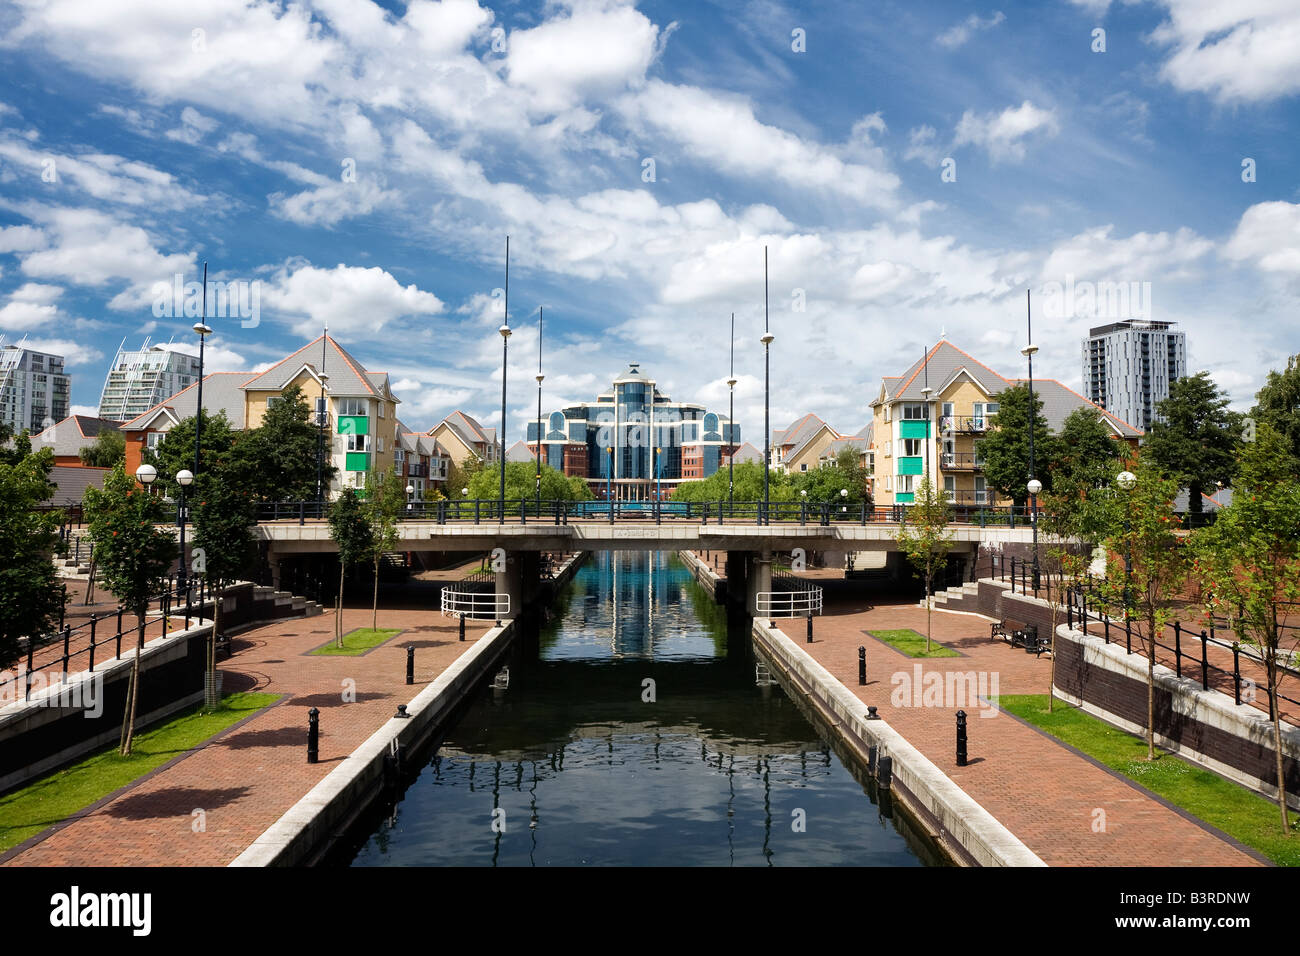 salford quays in manchester, england, looking towards Granary wharf reflecting in the water of the mariners canal - Stock Image